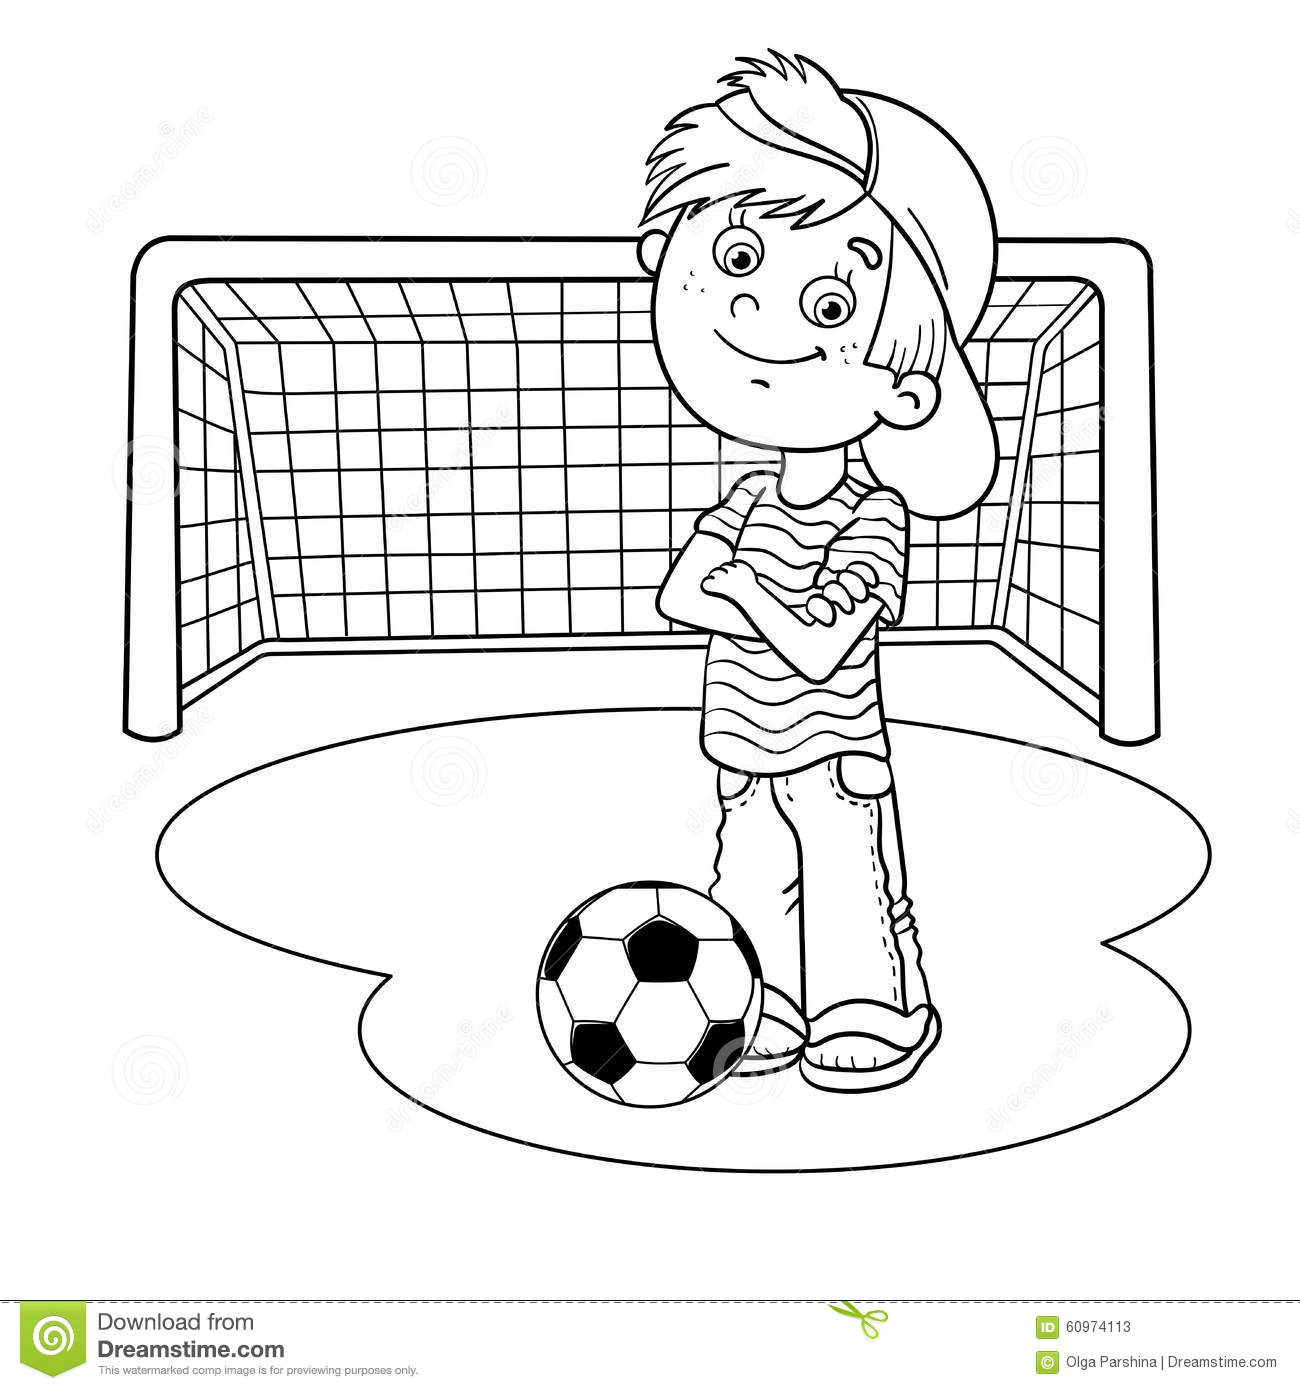 coloring page outline of a soccer boy stock vector image 60979019